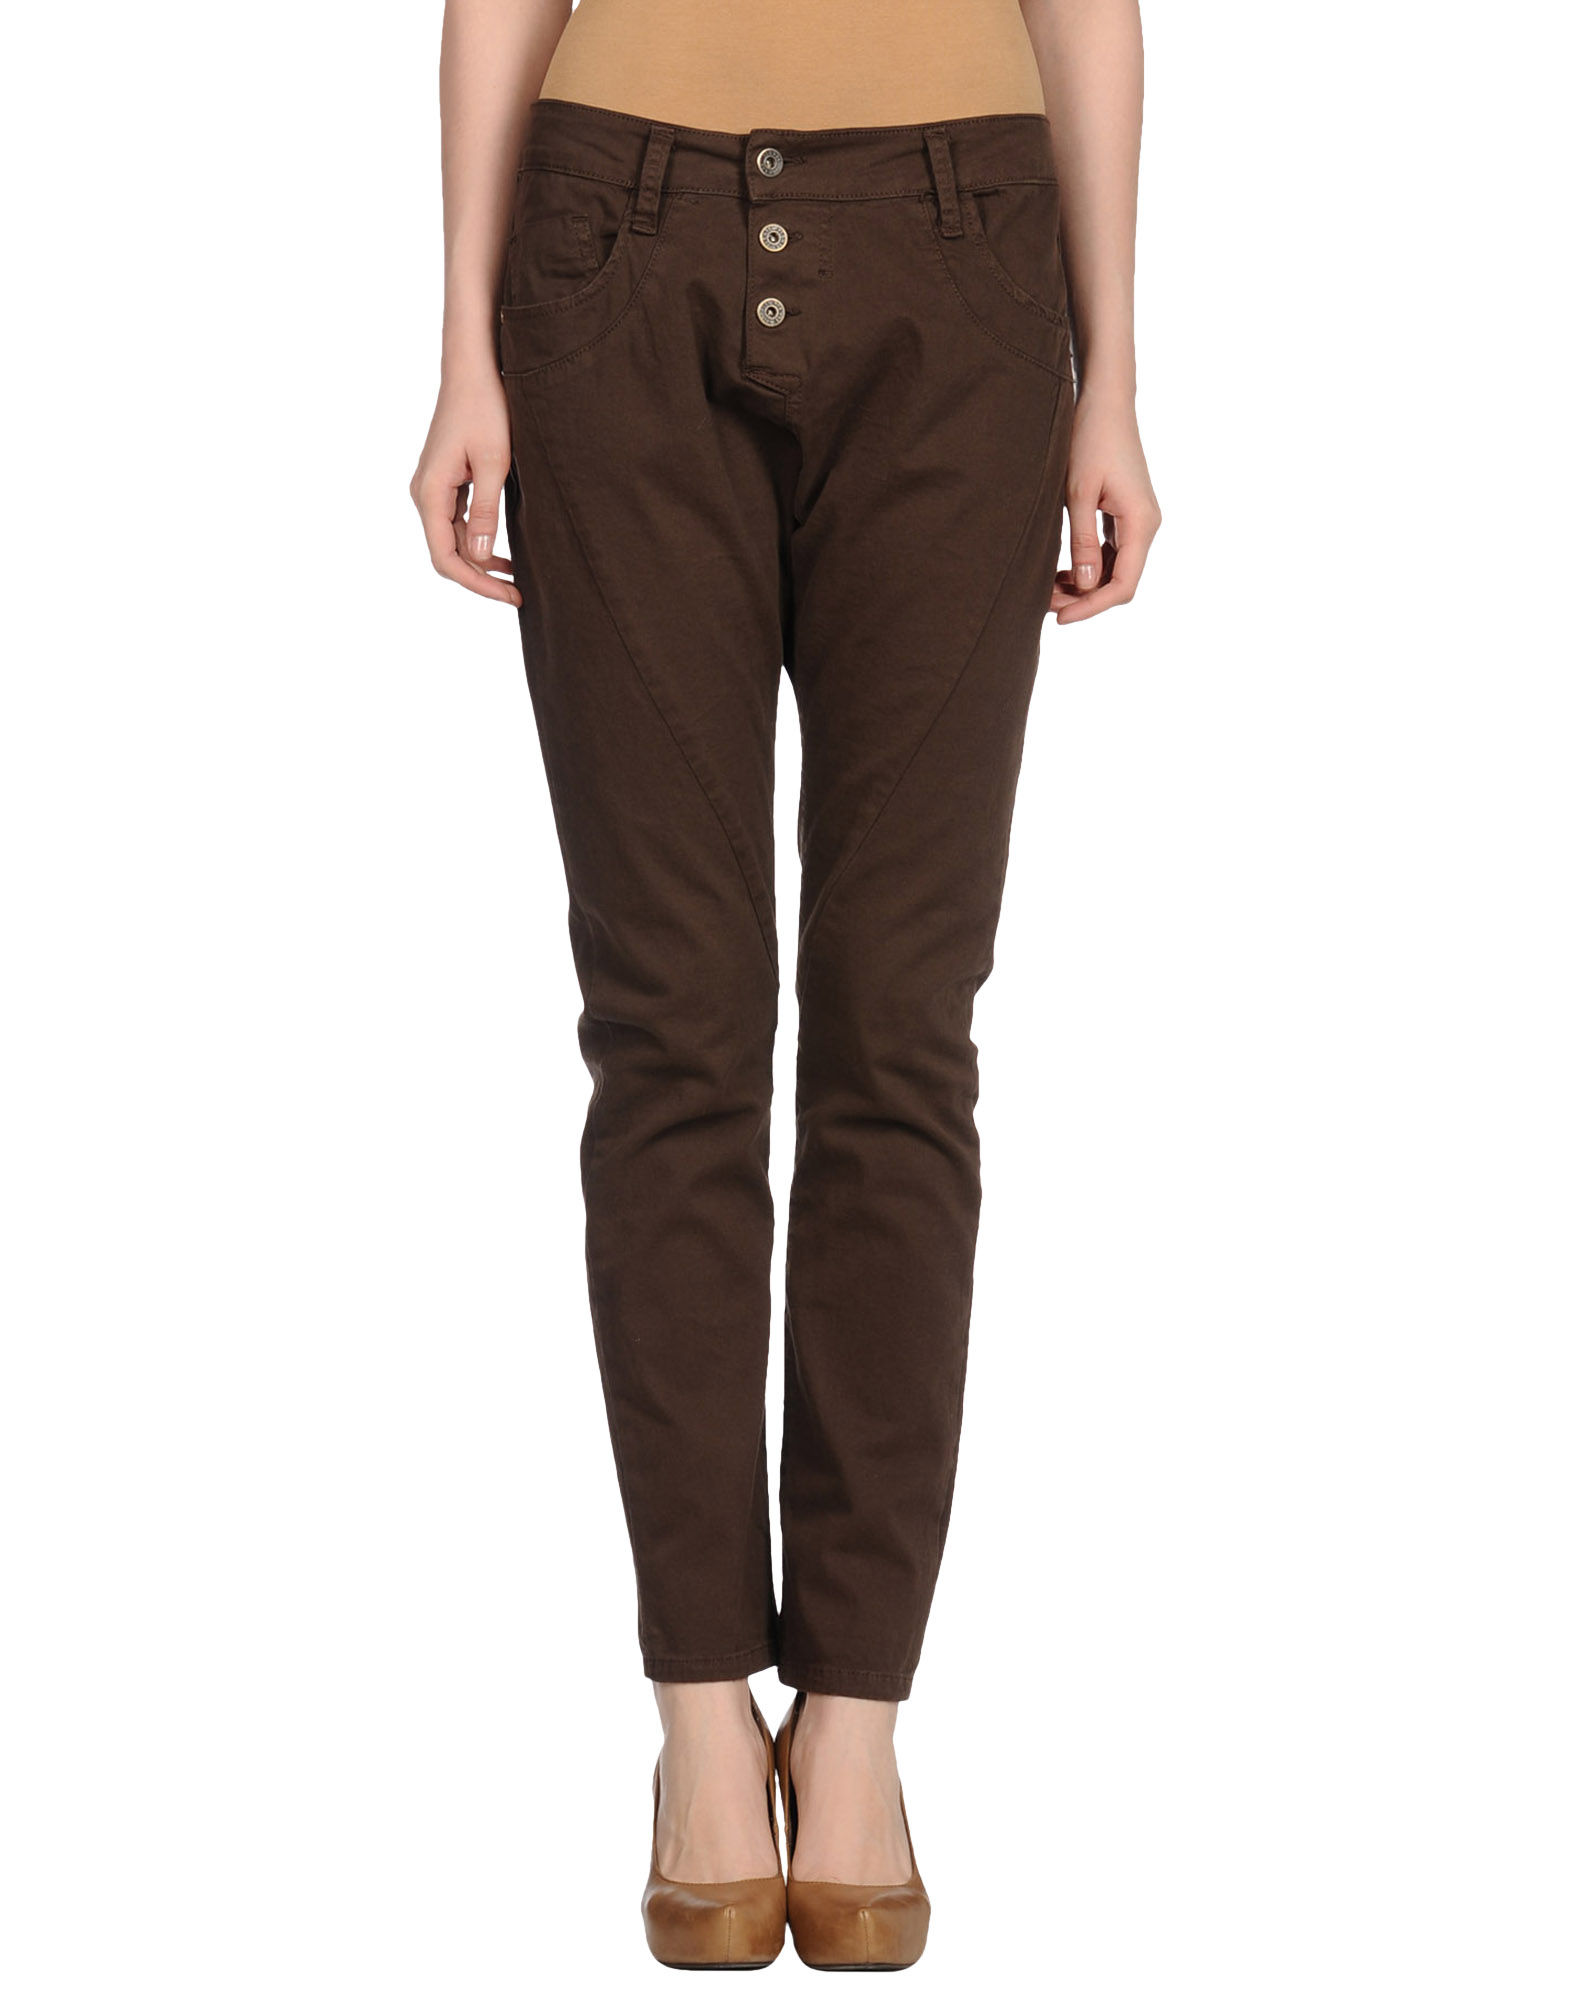 Brown Pants. Showing 48 of results that match your query. Search Product Result. Product - Machine Brand Skinny Fashion Brown Junior Size Pants. Reduced Price. Product Image. Price $ 8. Product - Alfani Womens Casual Pants - Brown Polyester. Product Image. .